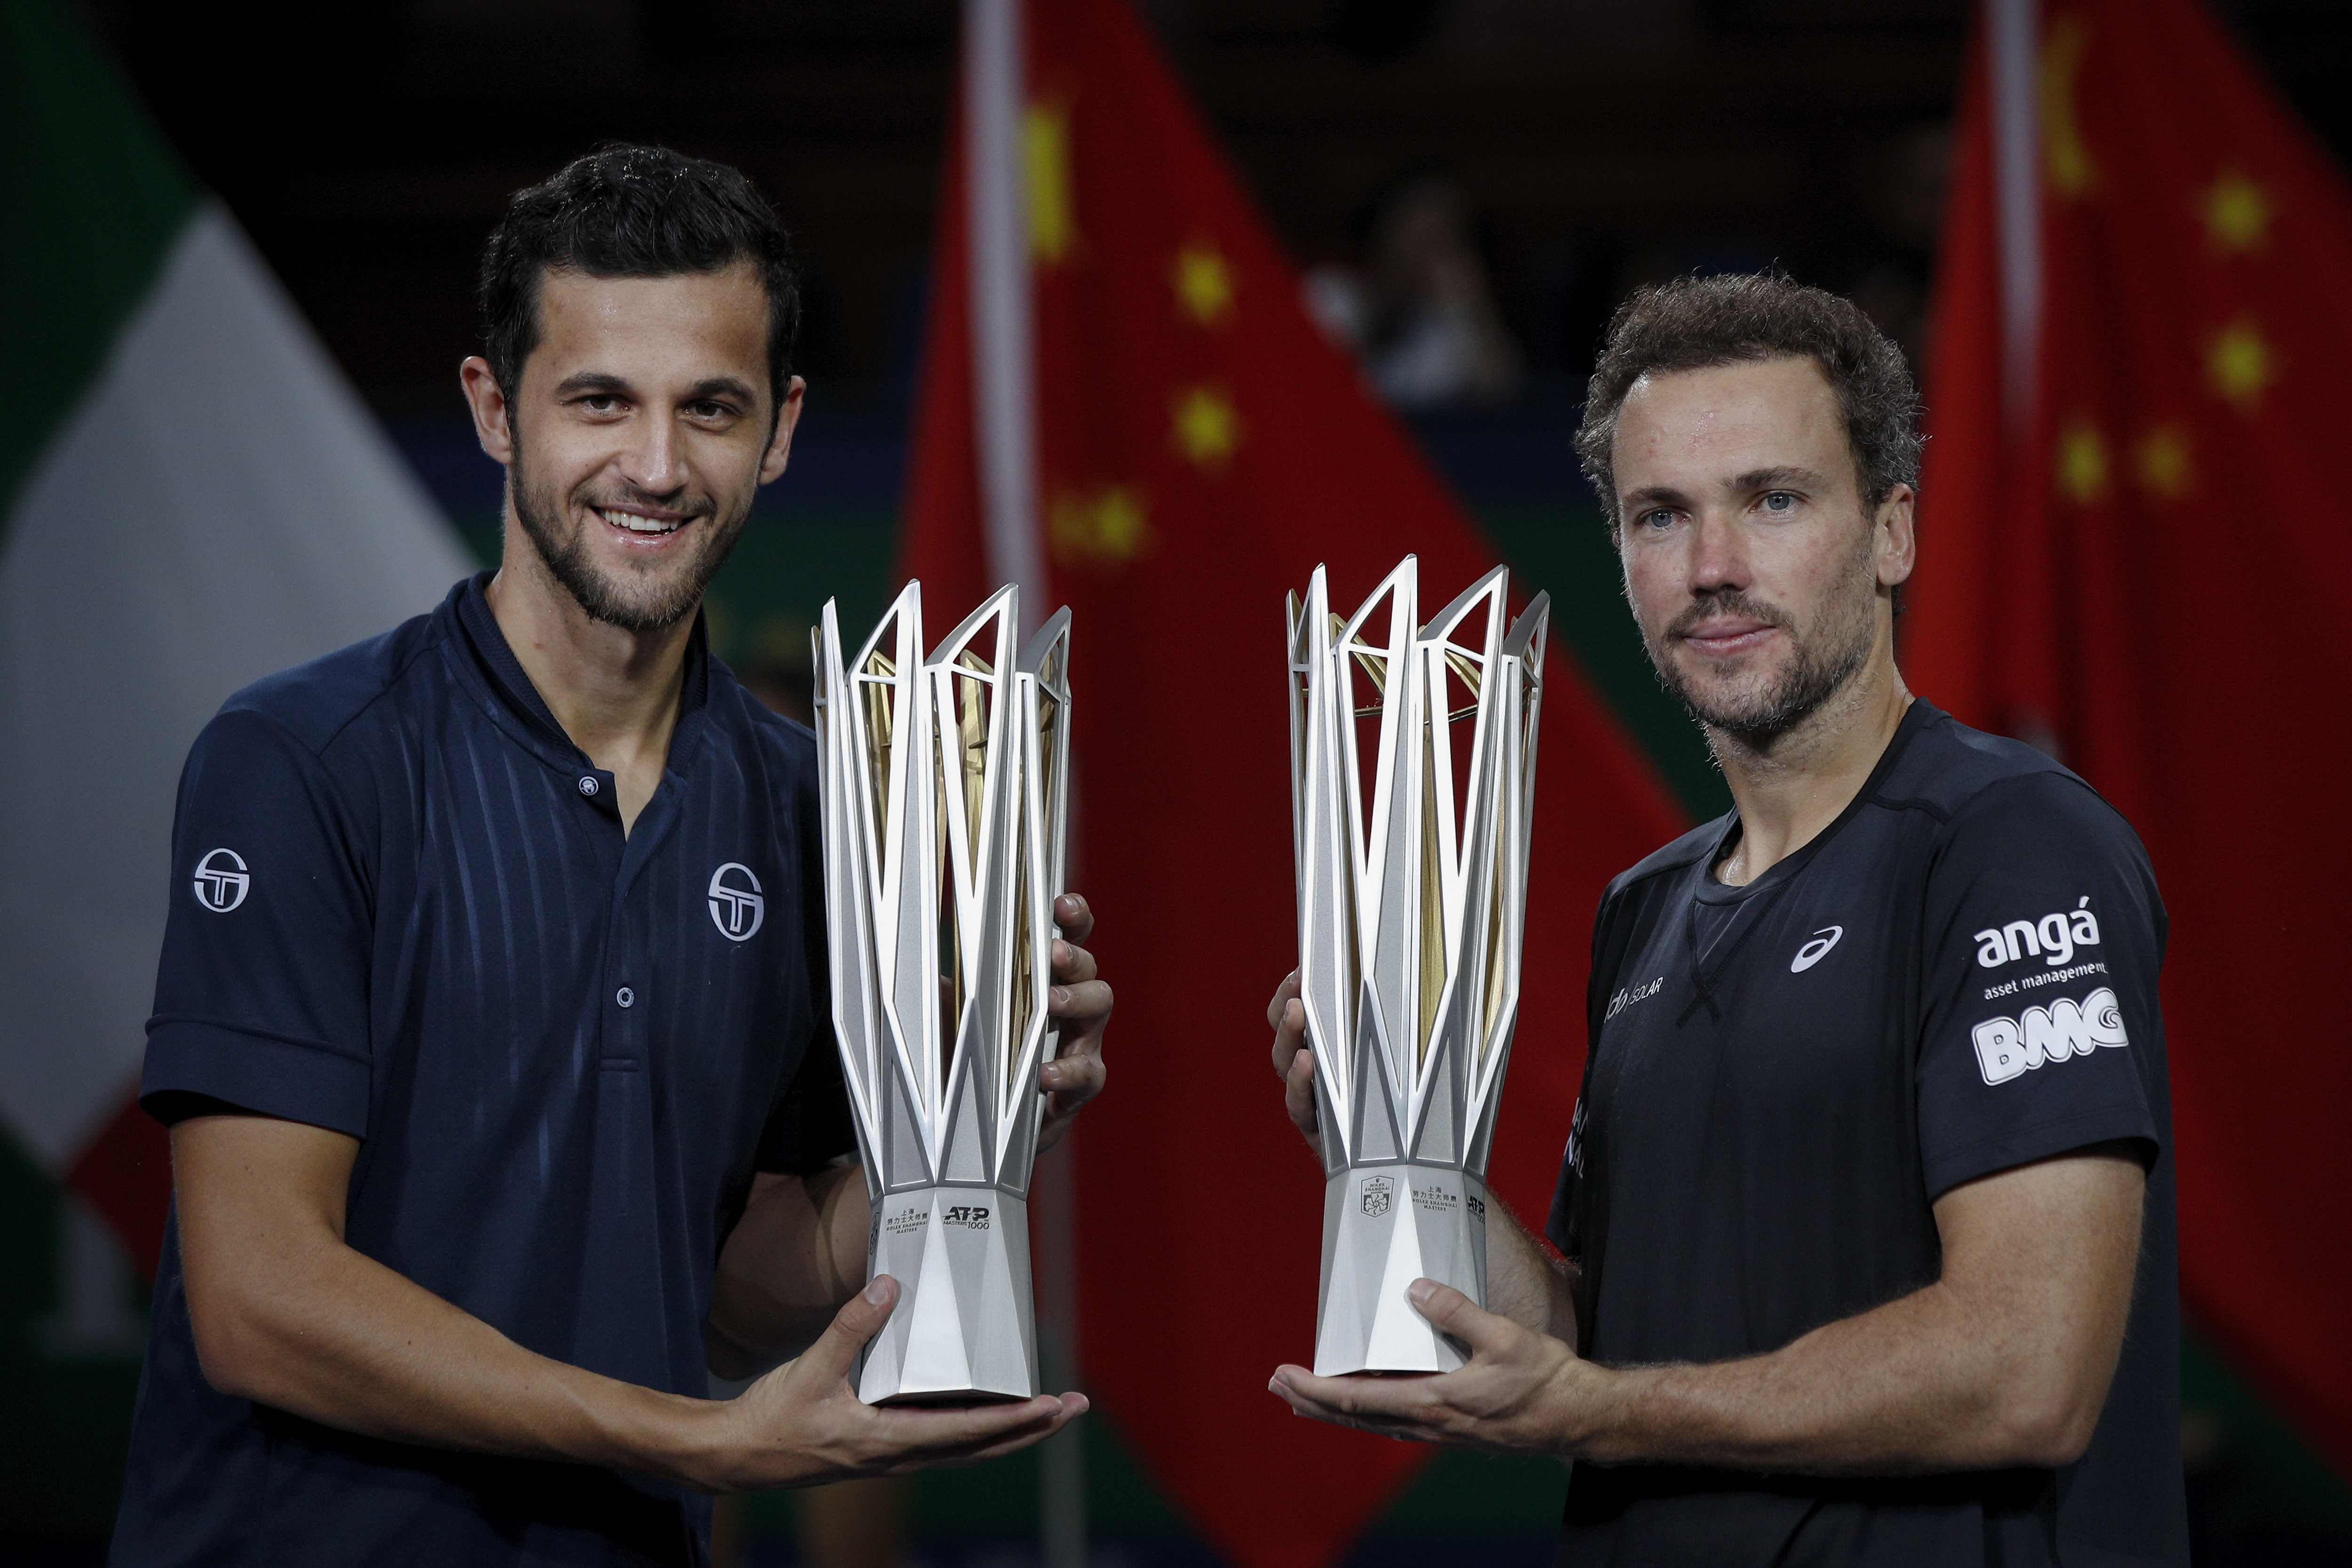 Mate Pavic of Croatia ( left) and his partner Bruno Soares of Brazil hold their winner trophies after defeating Lukasz Kubot of Poland and Marcelo Melo of Brazil in the men's doubles final at the Shanghai Masters tennis tournament at Qizhong Forest Sports City Tennis Center in Shanghai, China on Sunday.